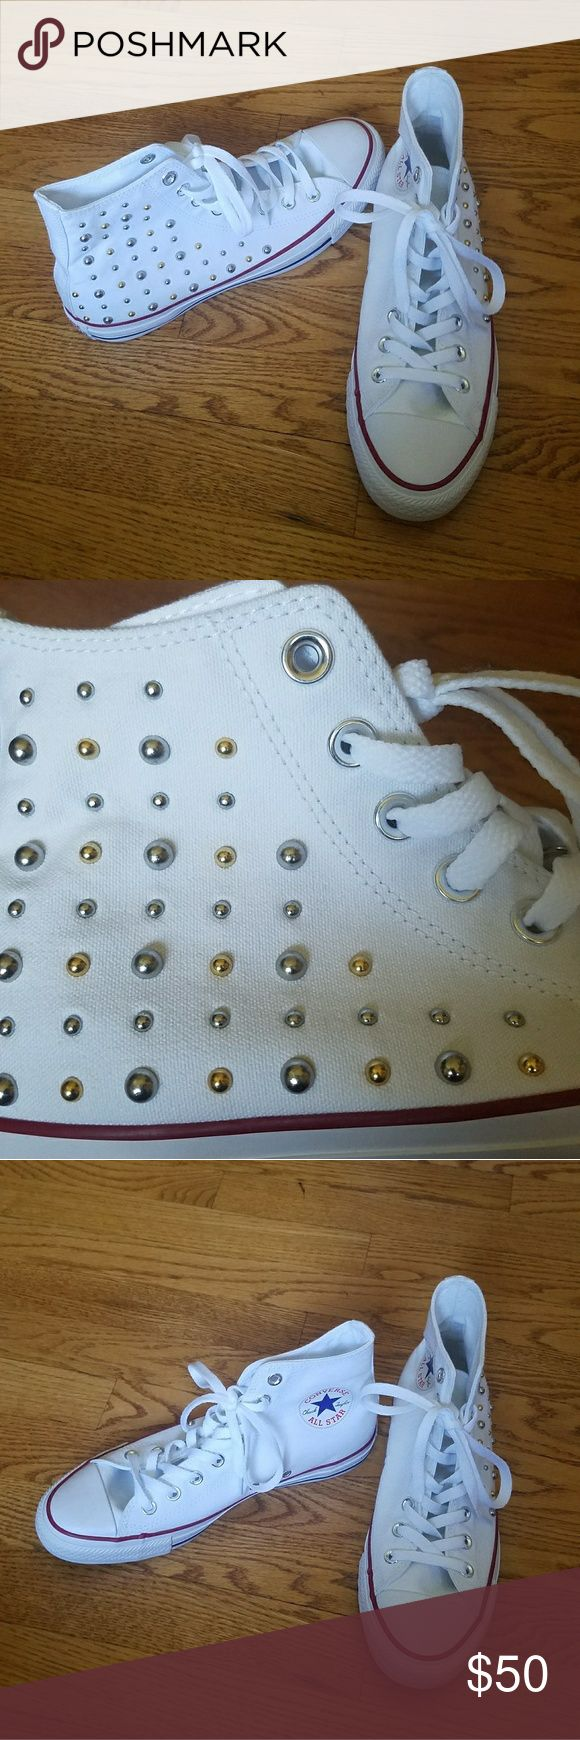 New Without Tags White Studded Converse Woman's 9 This is a brand new never been worn item!! Super cute for summer. The studs add a little playfulness and edge. Converse Shoes Sneakers